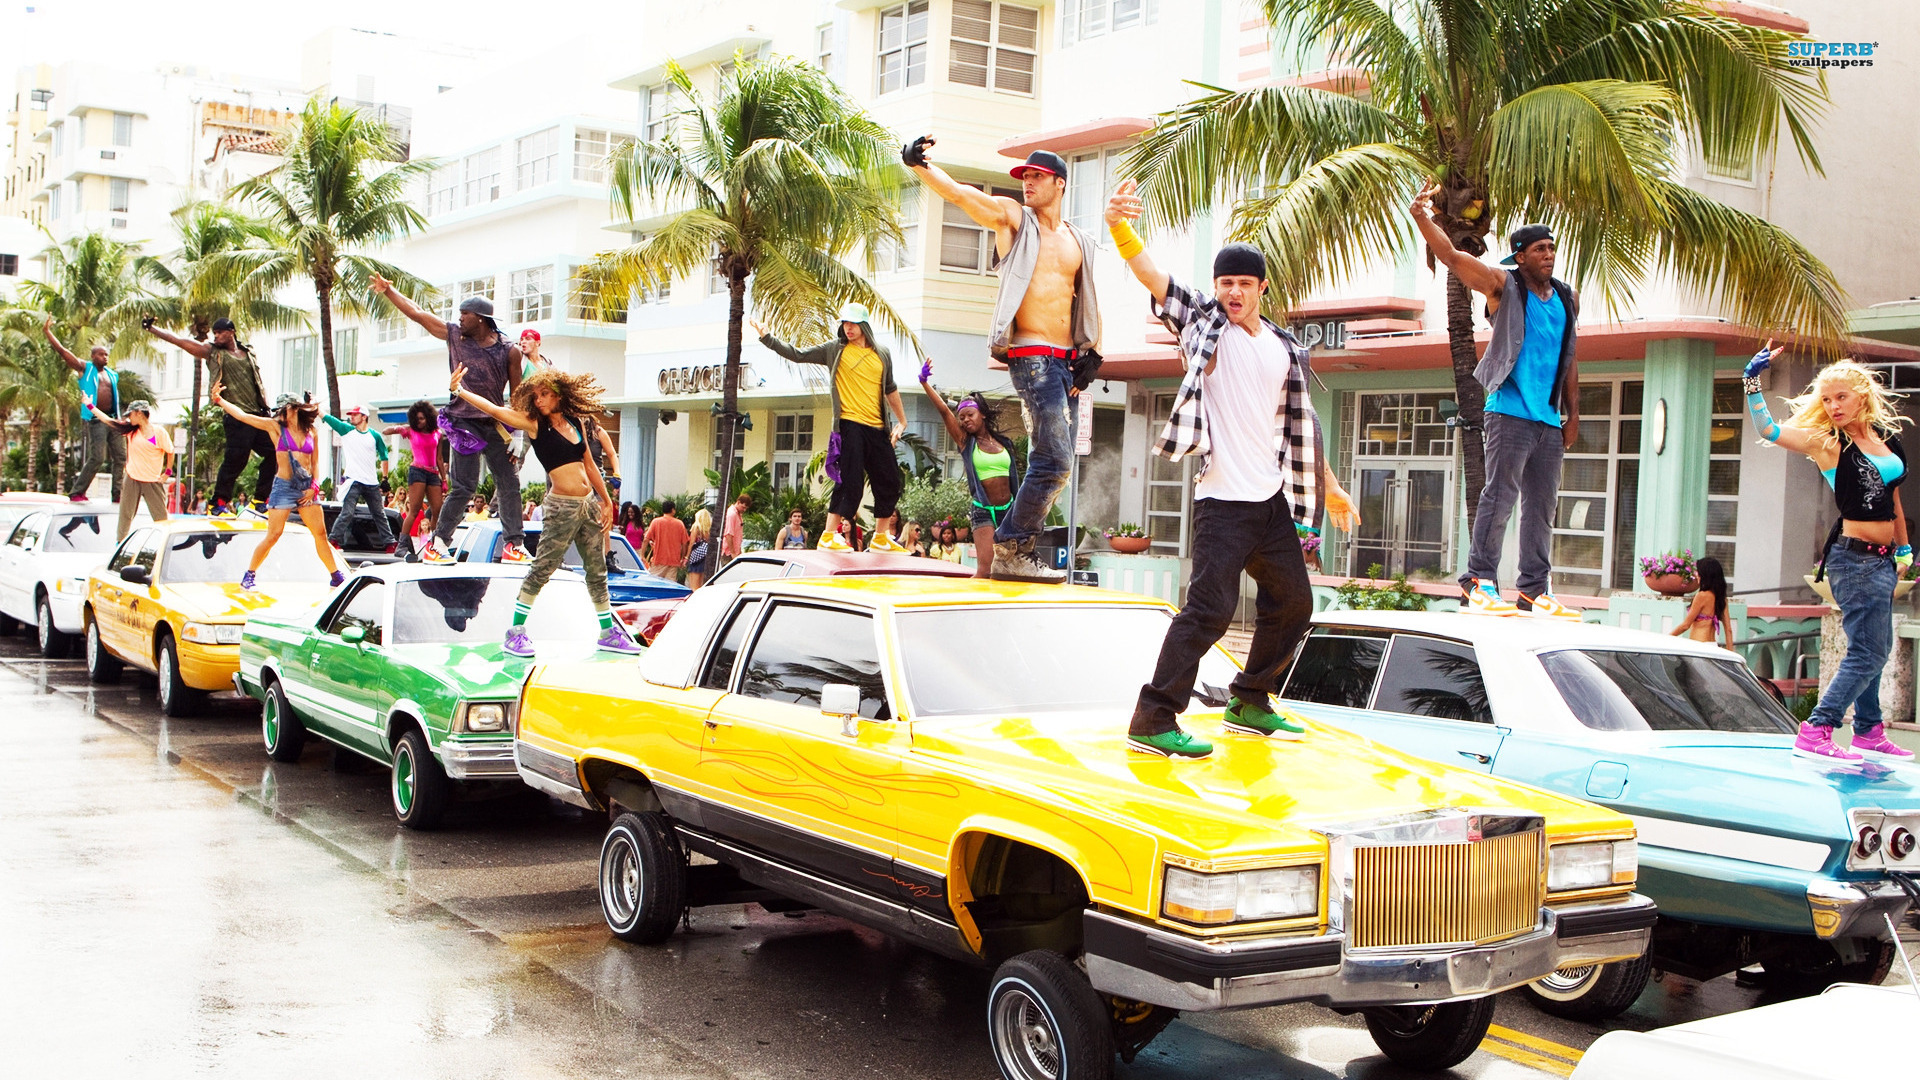 Step up revolution full movie hd download free.